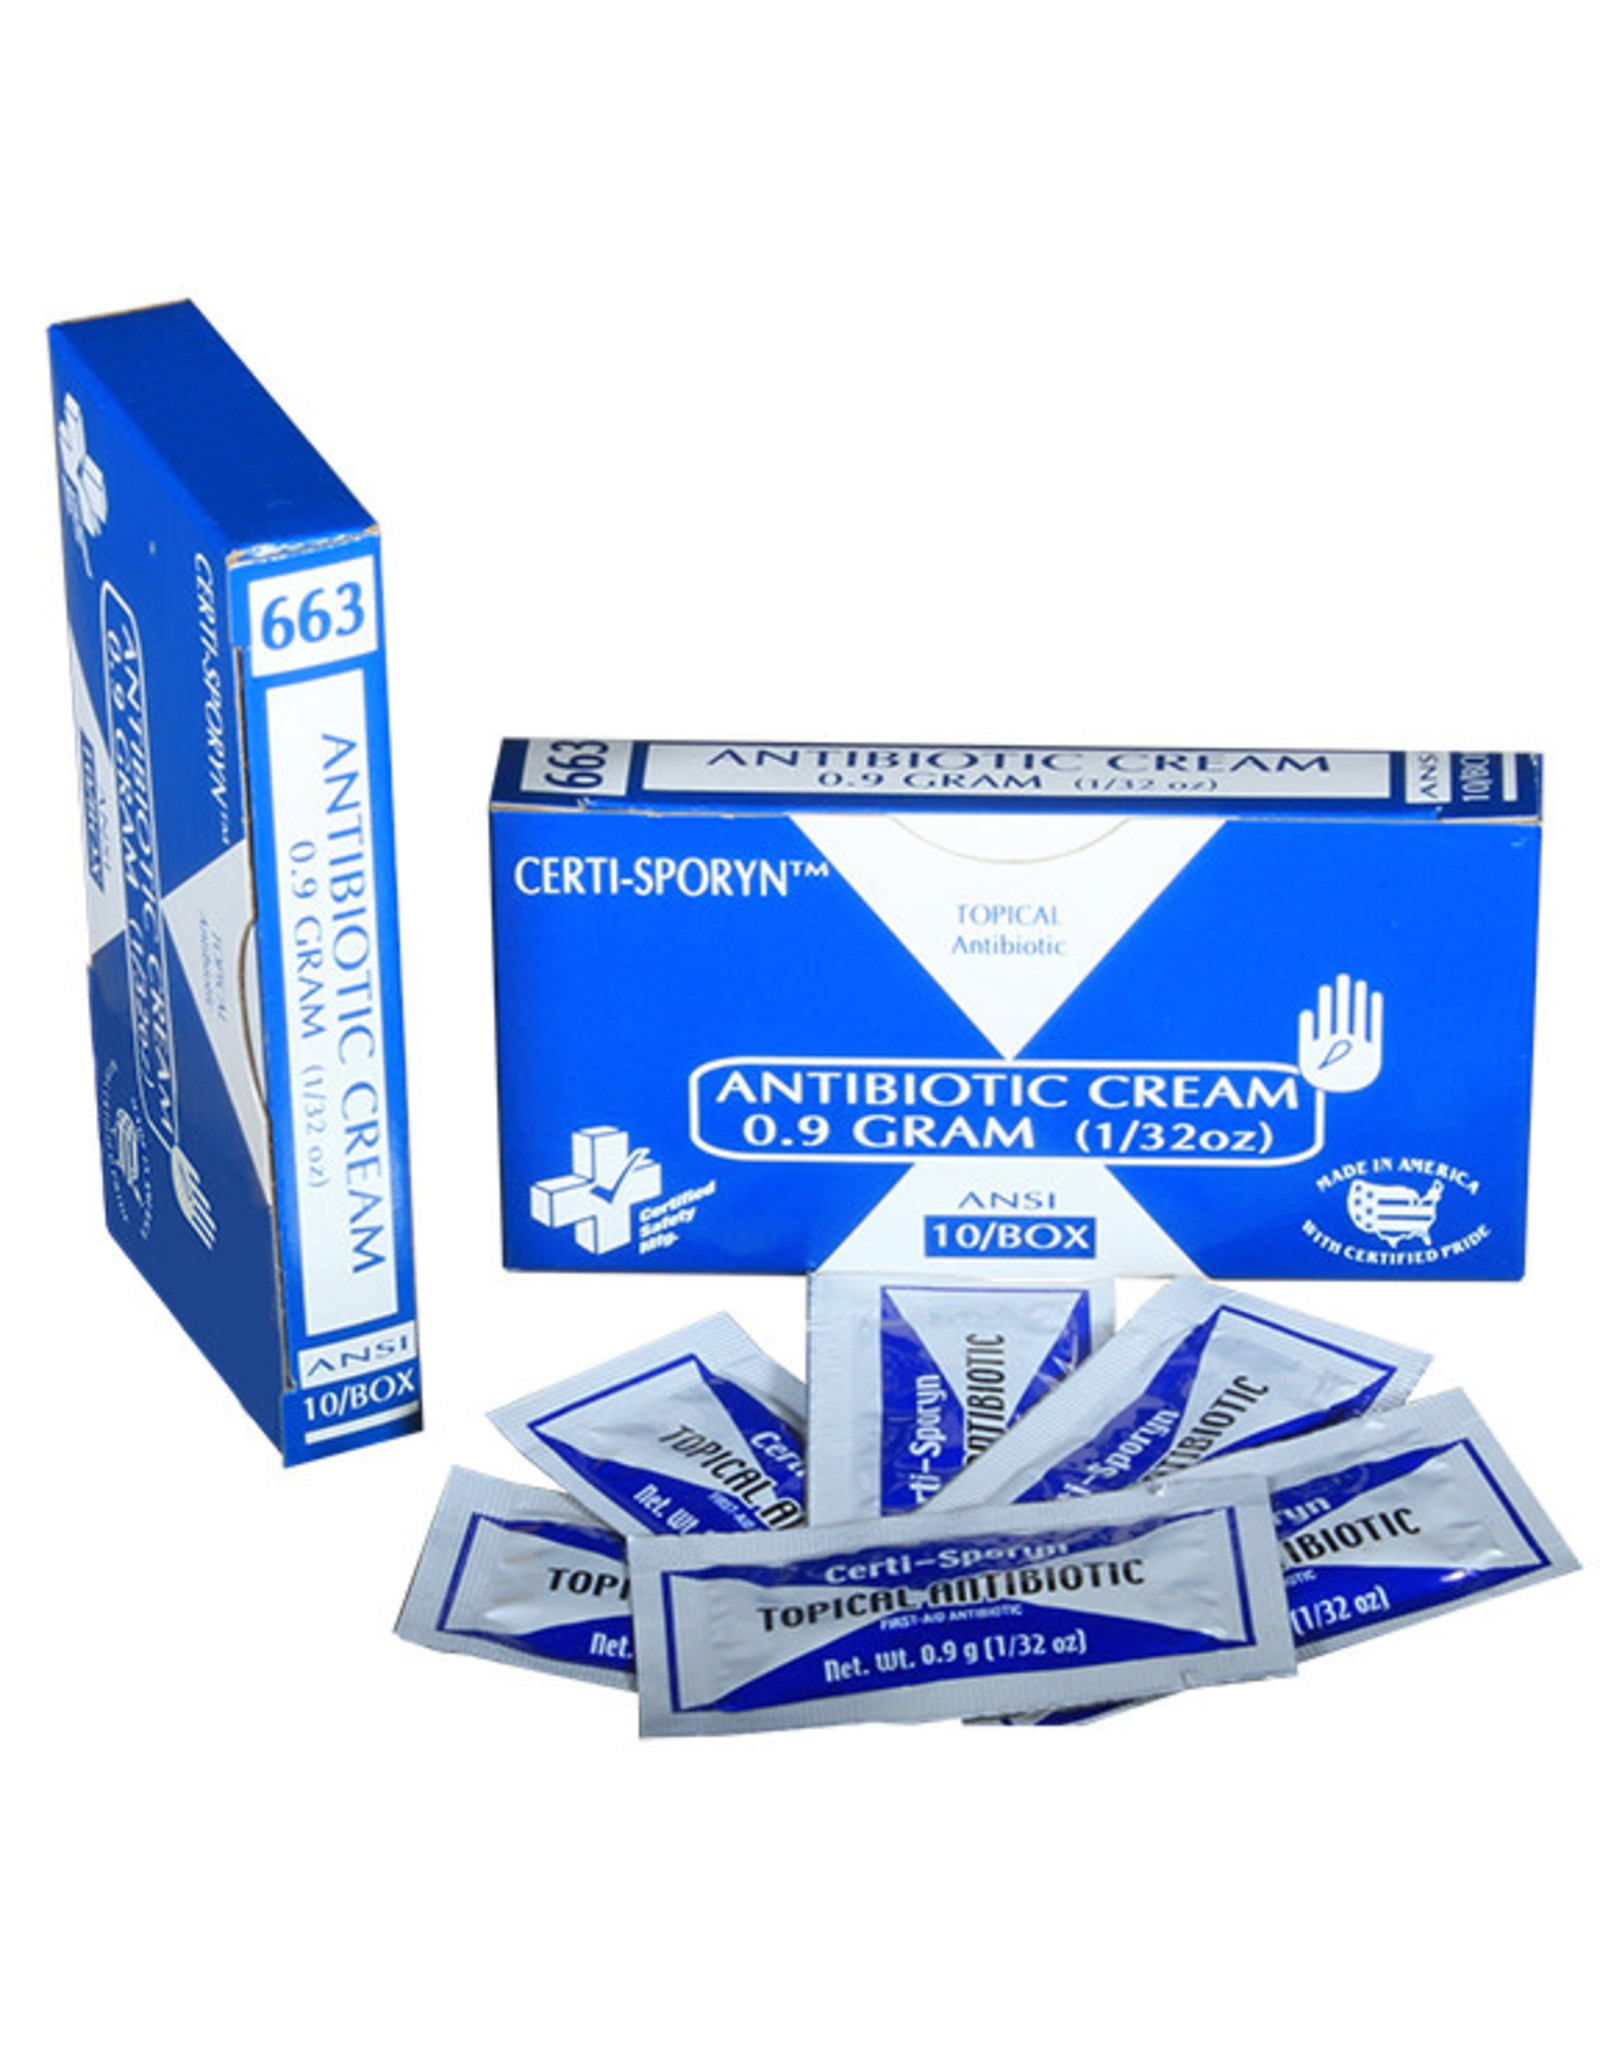 Certified Safety Mfg Certified Safety Anti-biotic Ointment 1 Gram Packet - 25 per Box